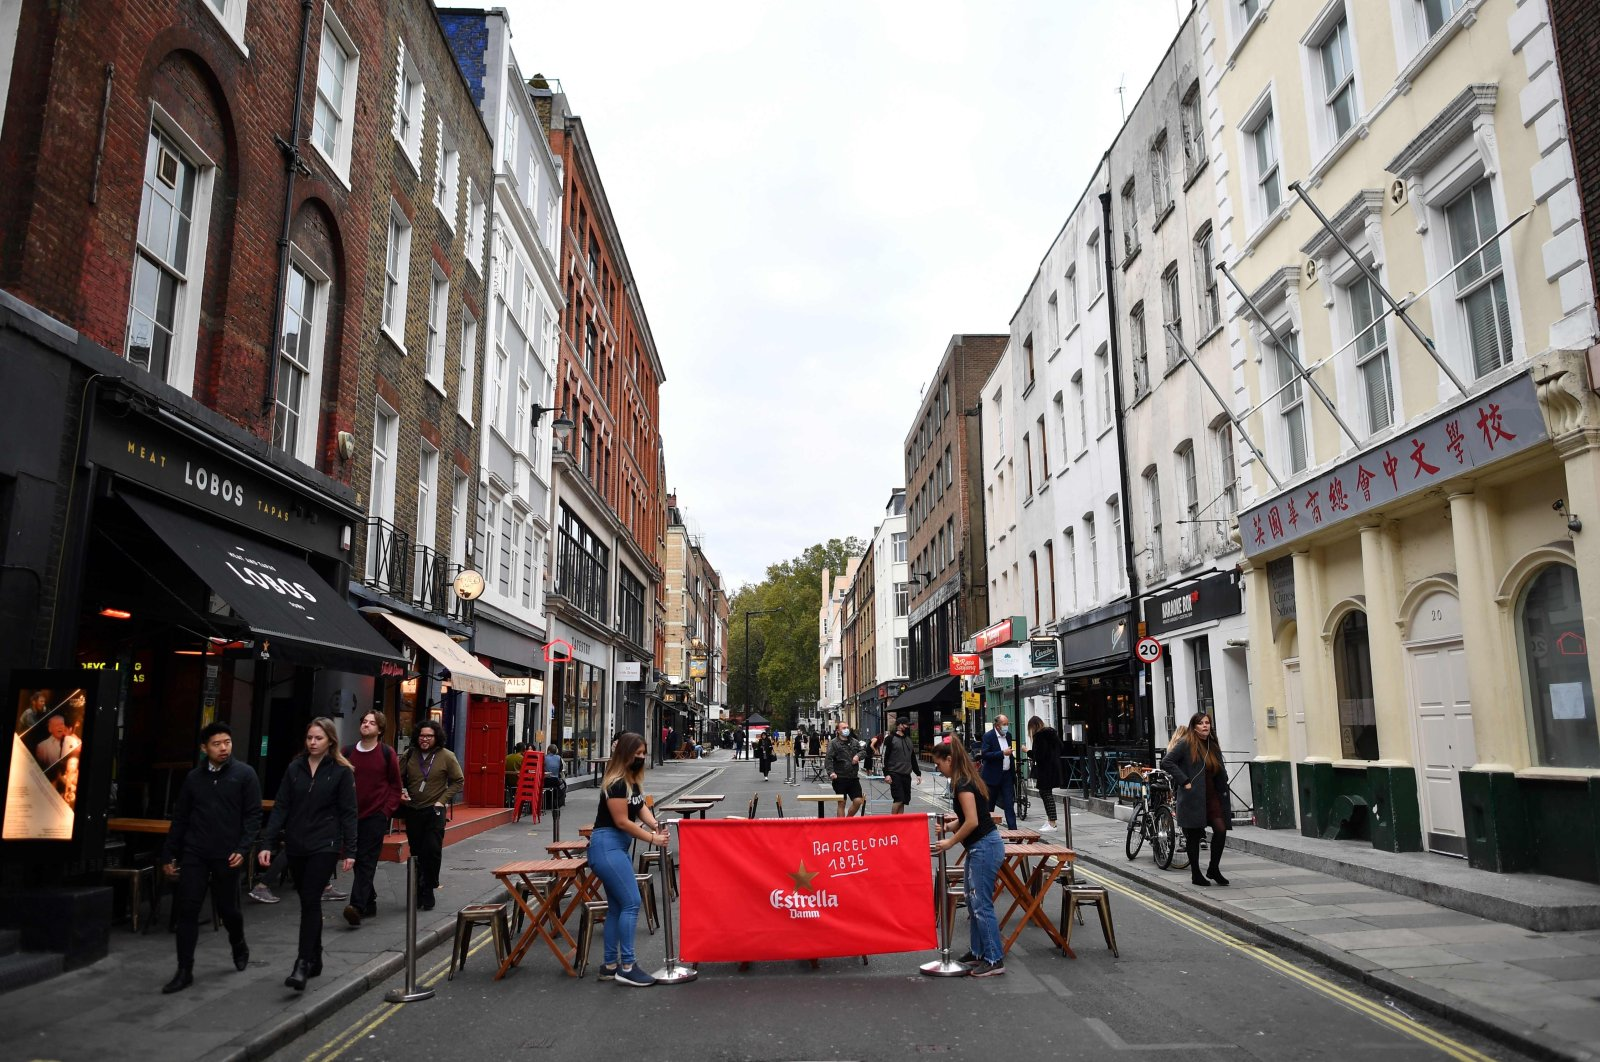 Employees place tables outside their restaurant in preparation for evening business, on Frith Street, Soho in the West End of London, the U.K., Oct. 16, 2020. (AFP Photo)